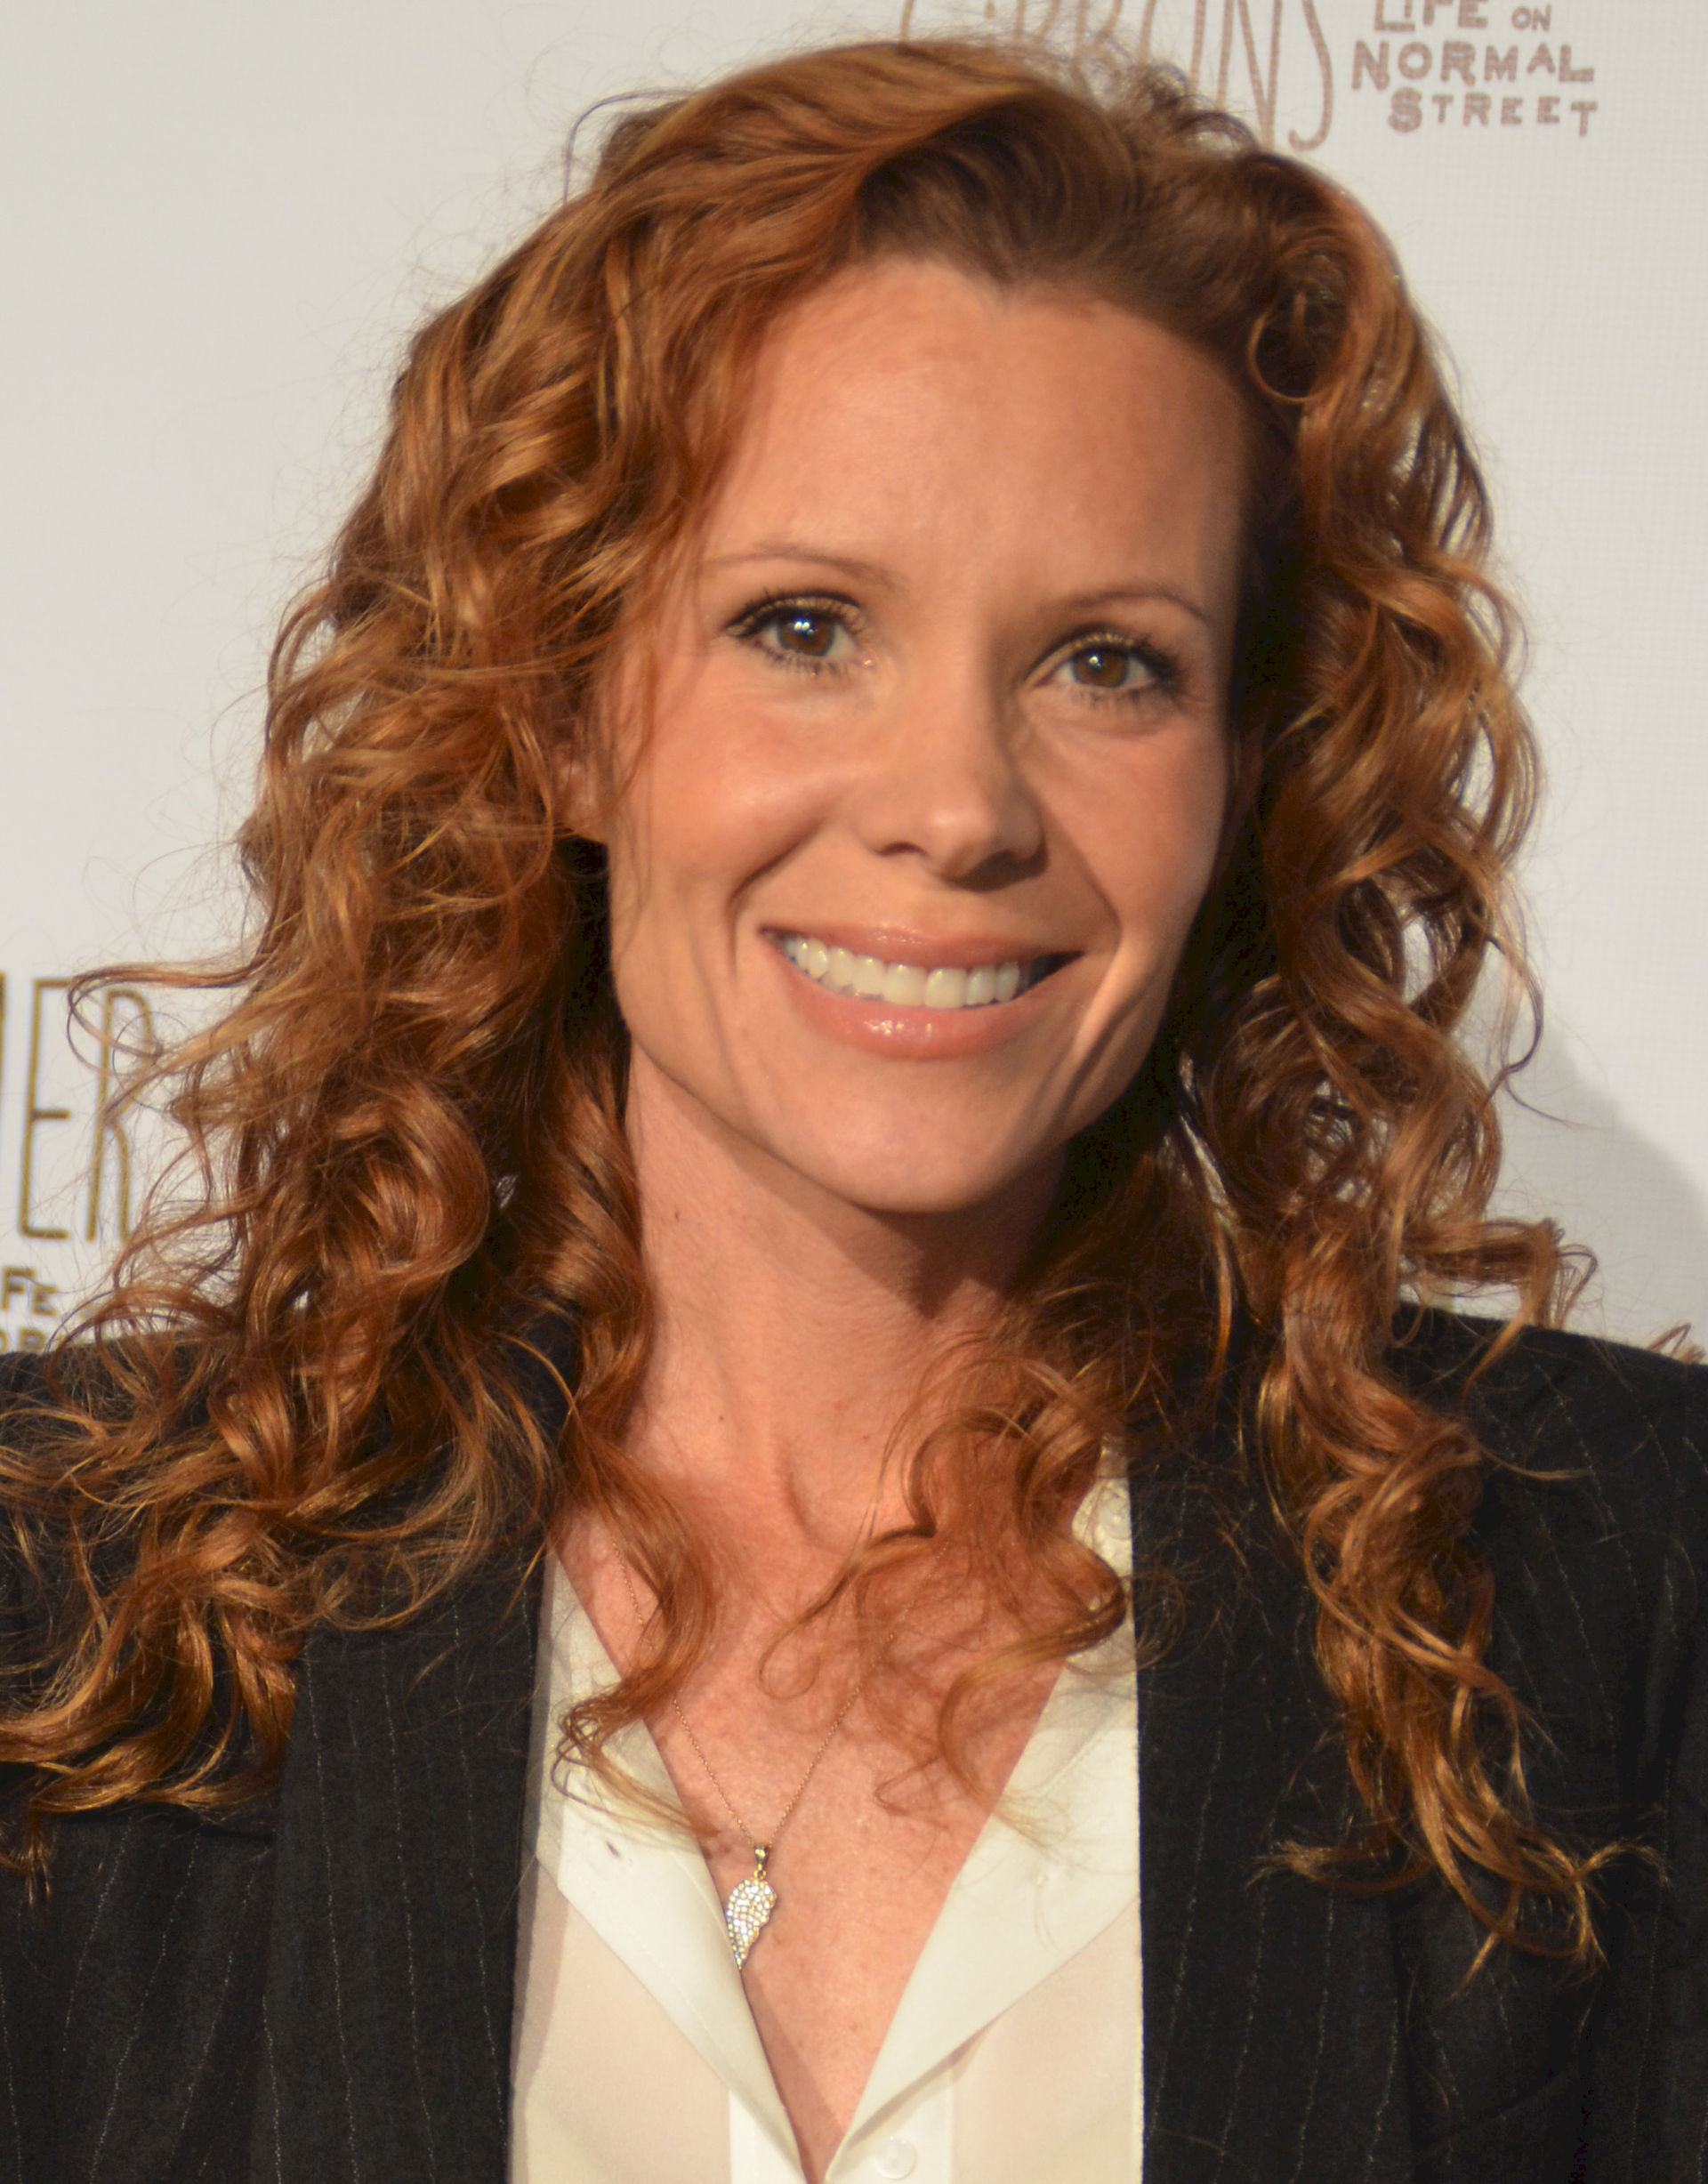 Photo of Robyn Lively: American actress, born 1972